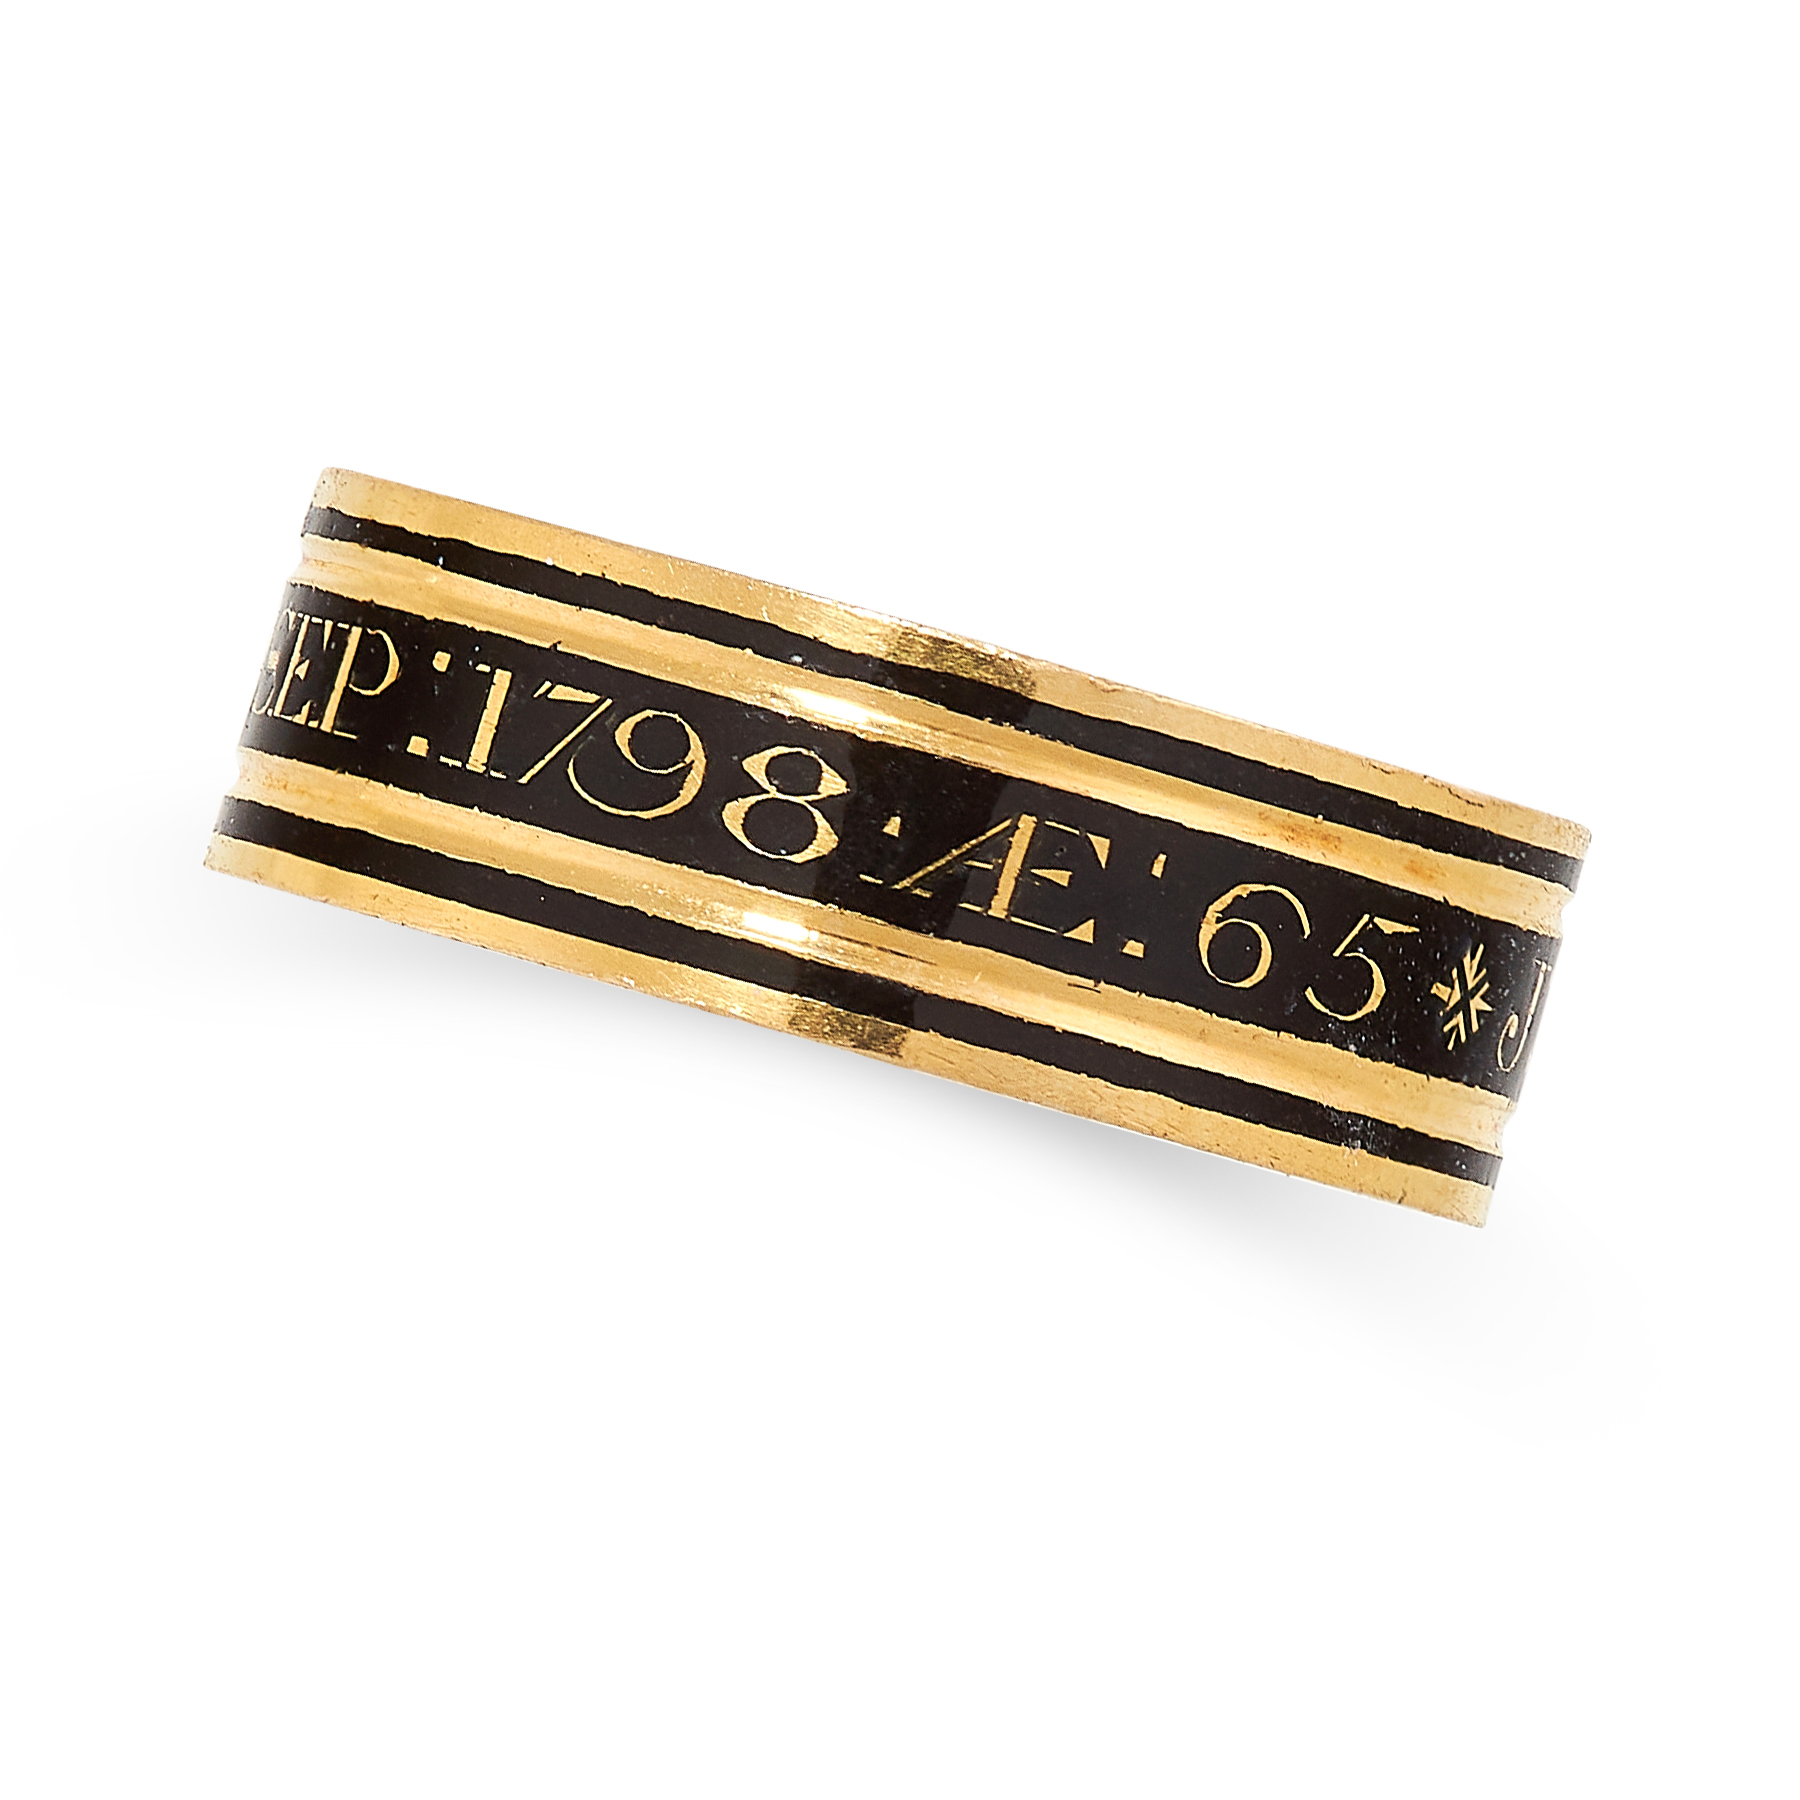 ANTIQUE ENAMEL MOURNING RING, 1798 in 18ct yellow gold, designed as a band set all around with black